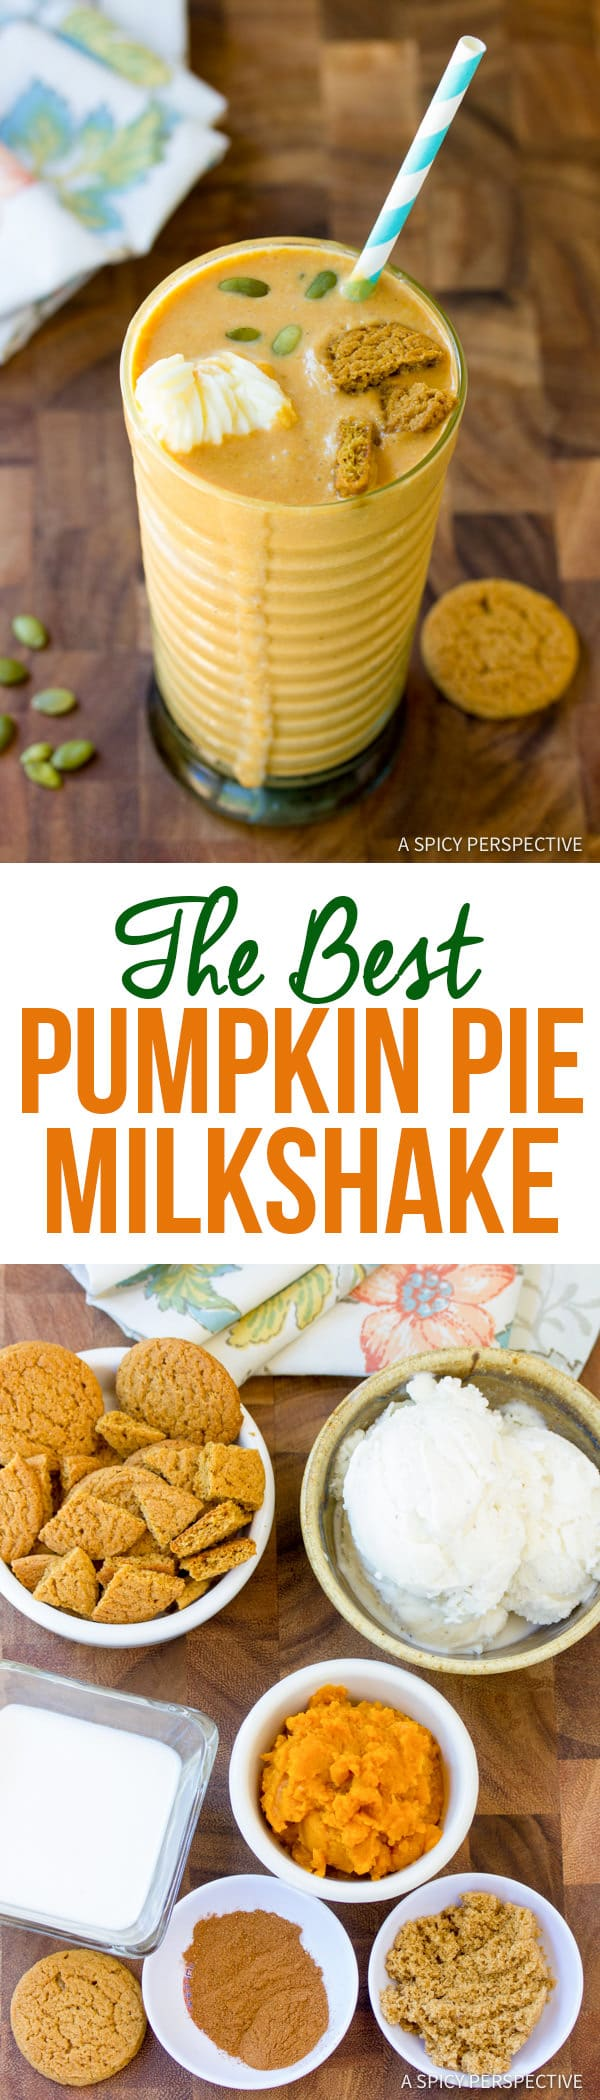 Simply The Best Pumpkin Pie Milkshake | ASpicyPerspective.com #halloween